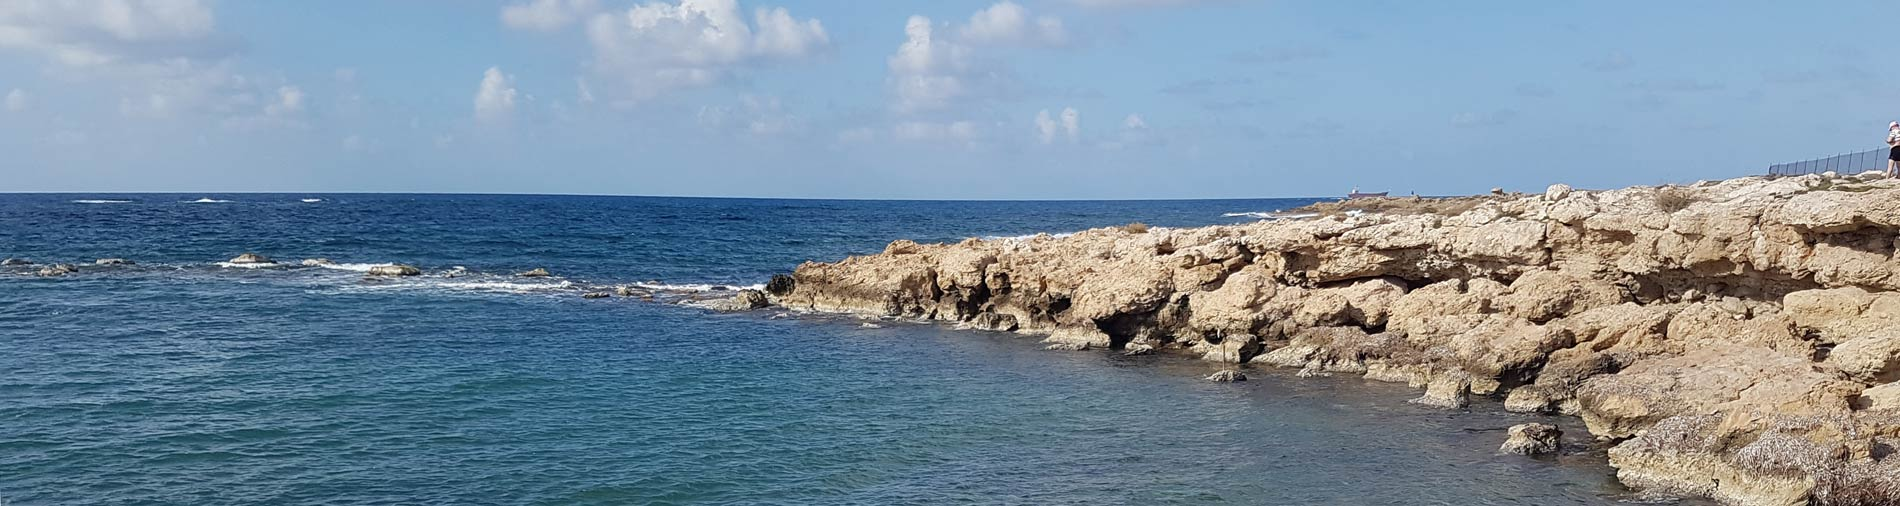 8 Must-Visit Paphos Cyprus Tourist Attractions